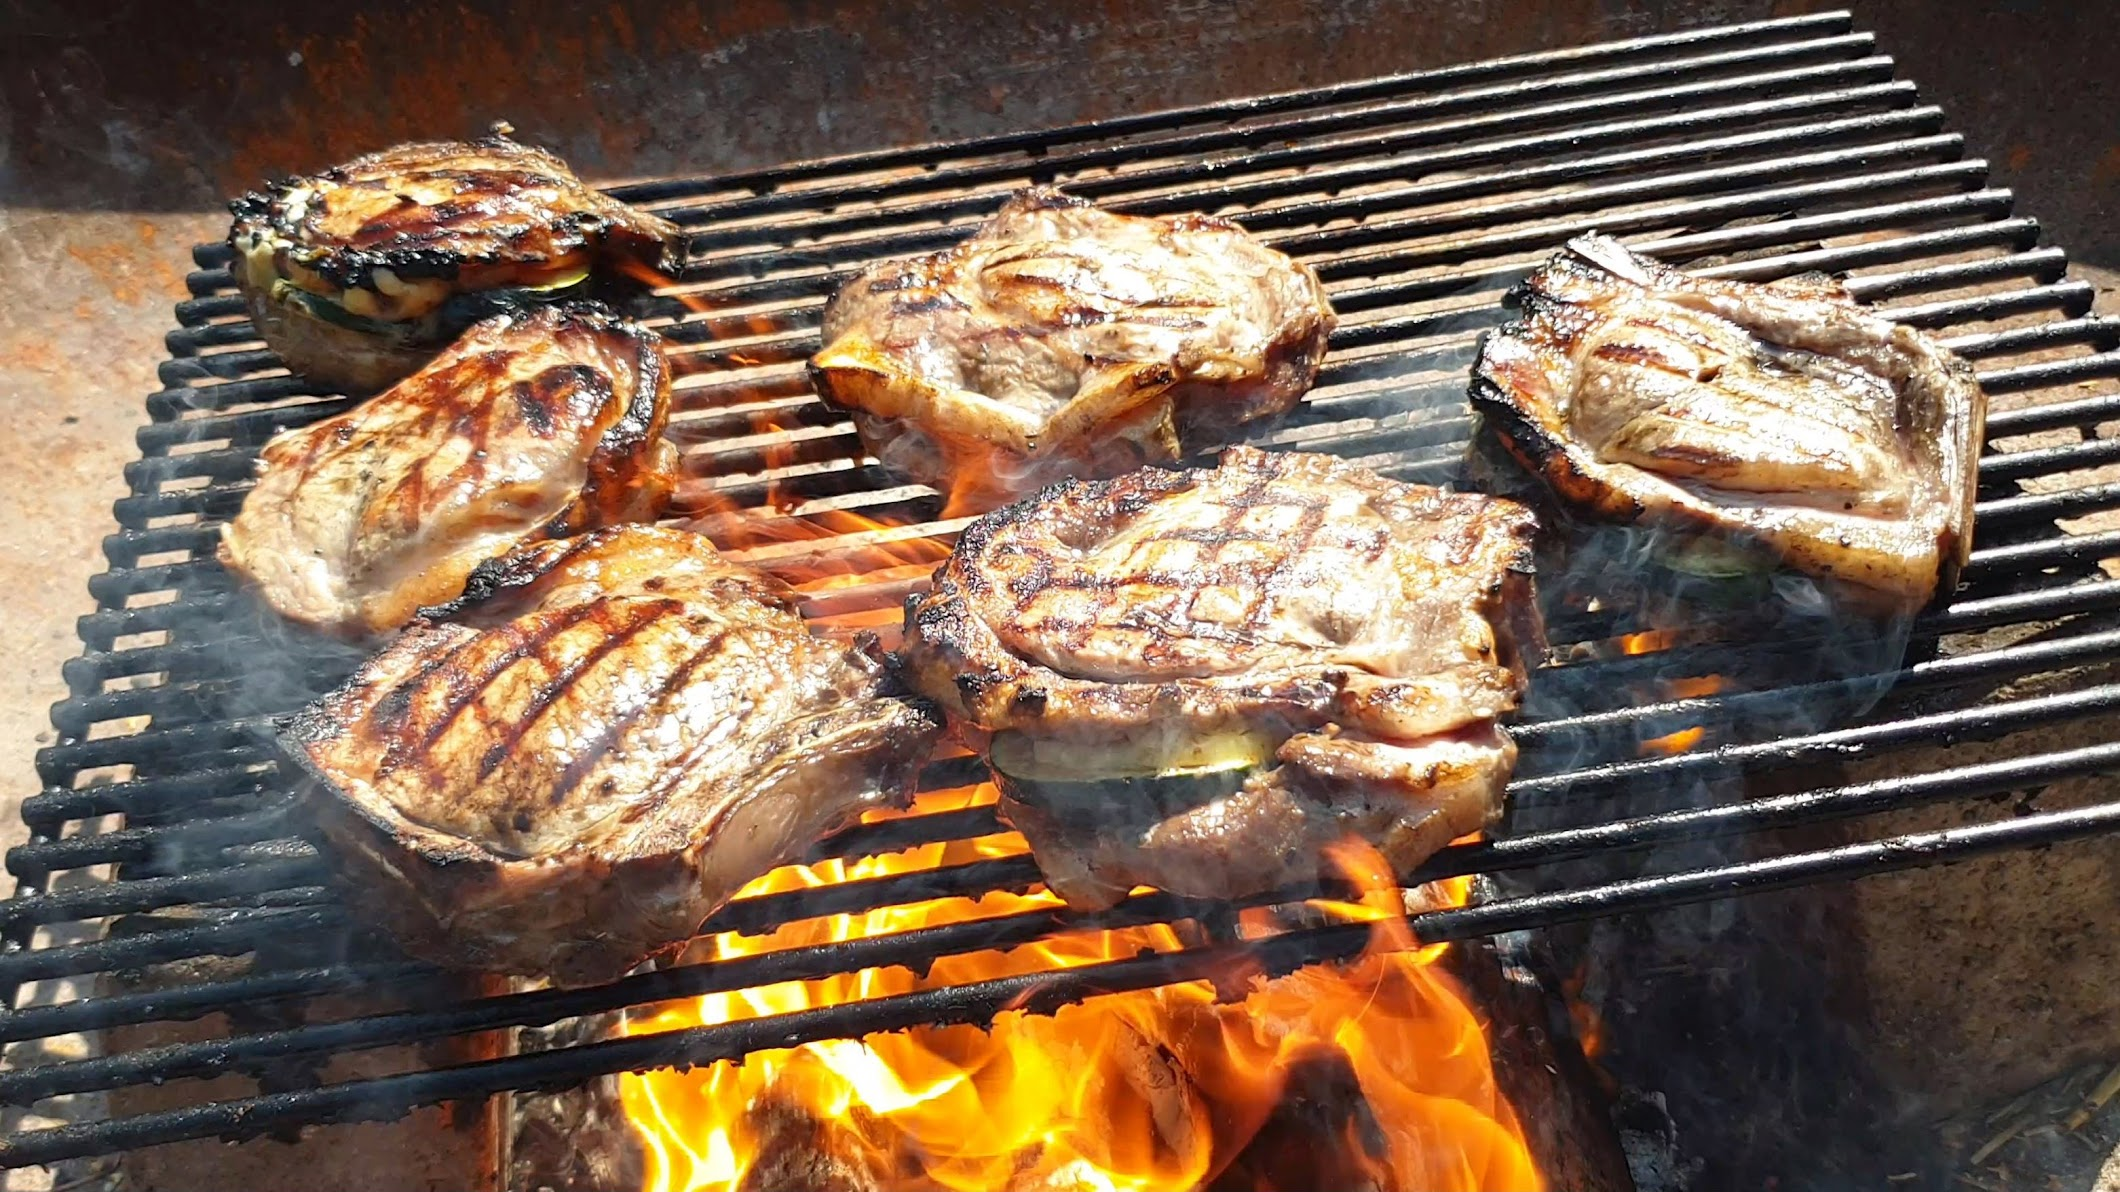 Heino's BBQ & Outdoorcooking Impressions